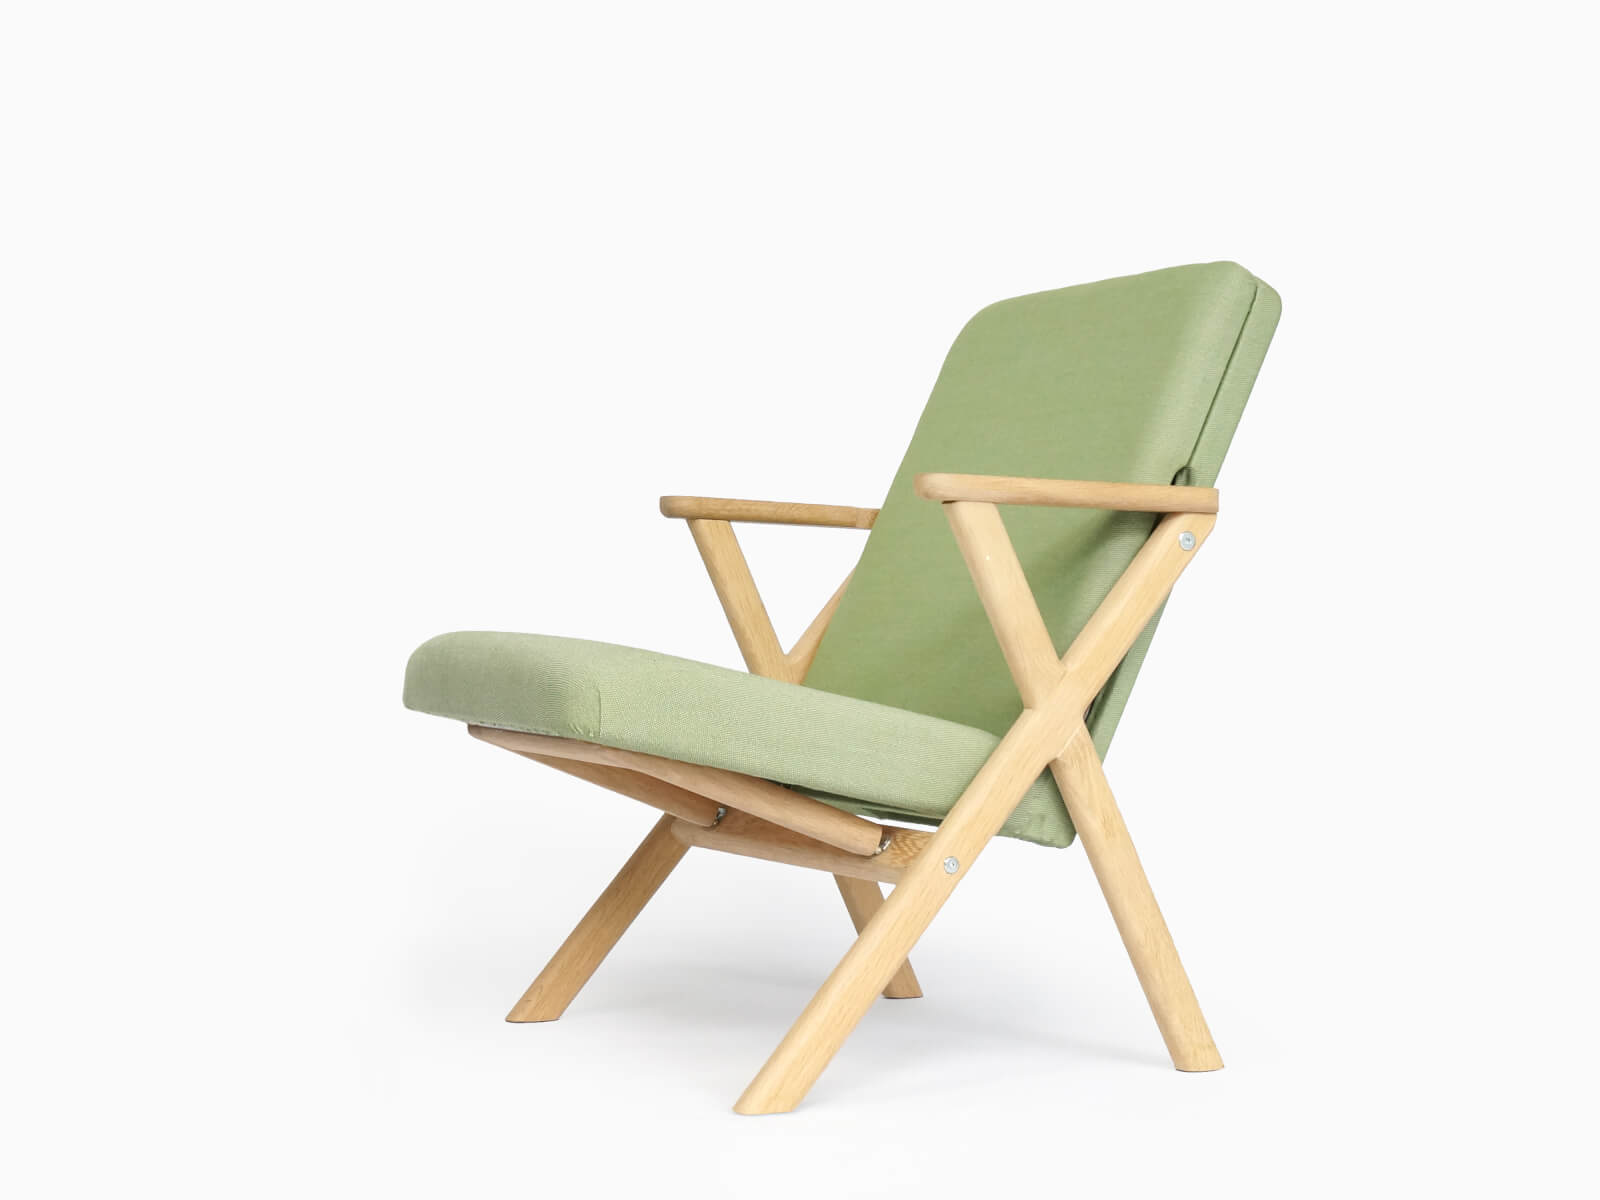 Hybrid Chair Studio Lorier Dutch Hybrid Furniture